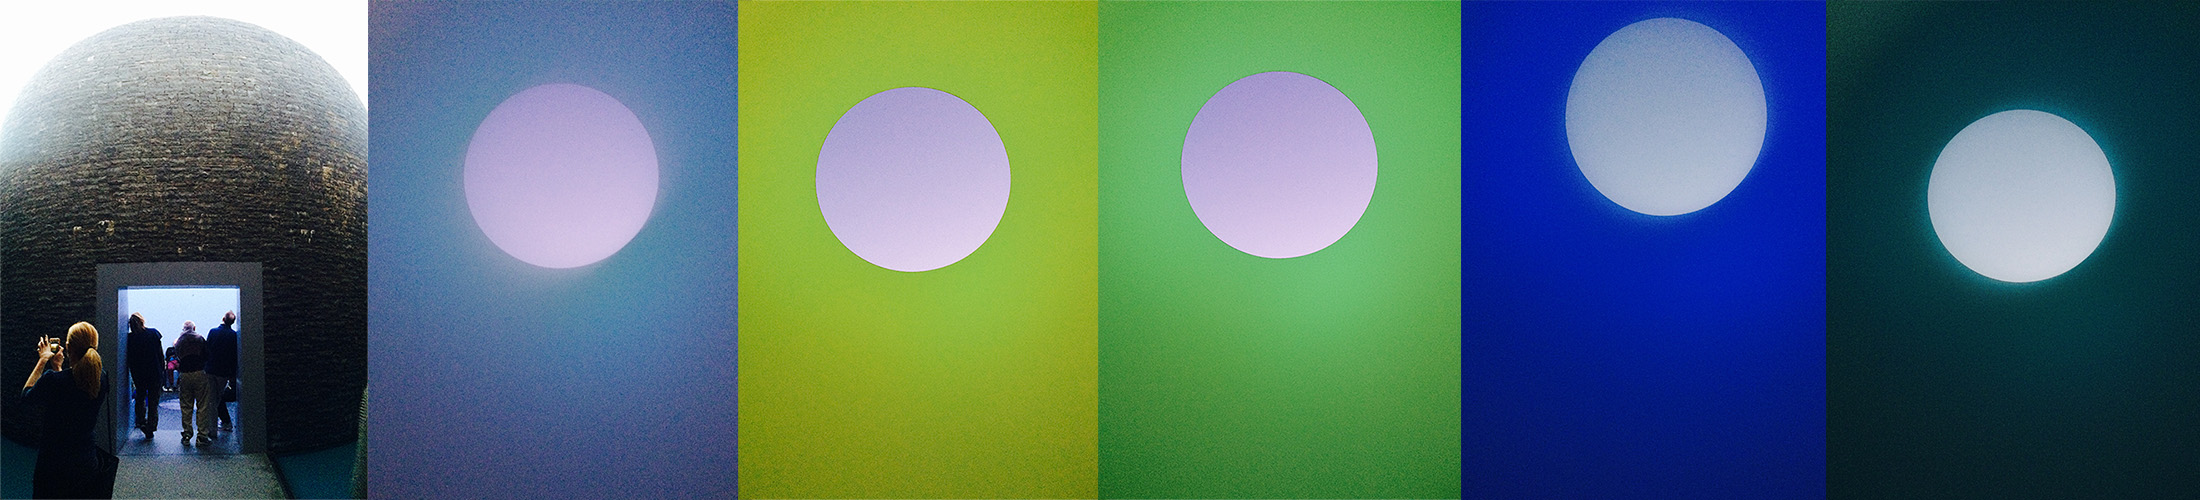 James Turrell Skyspace (Inside) collage